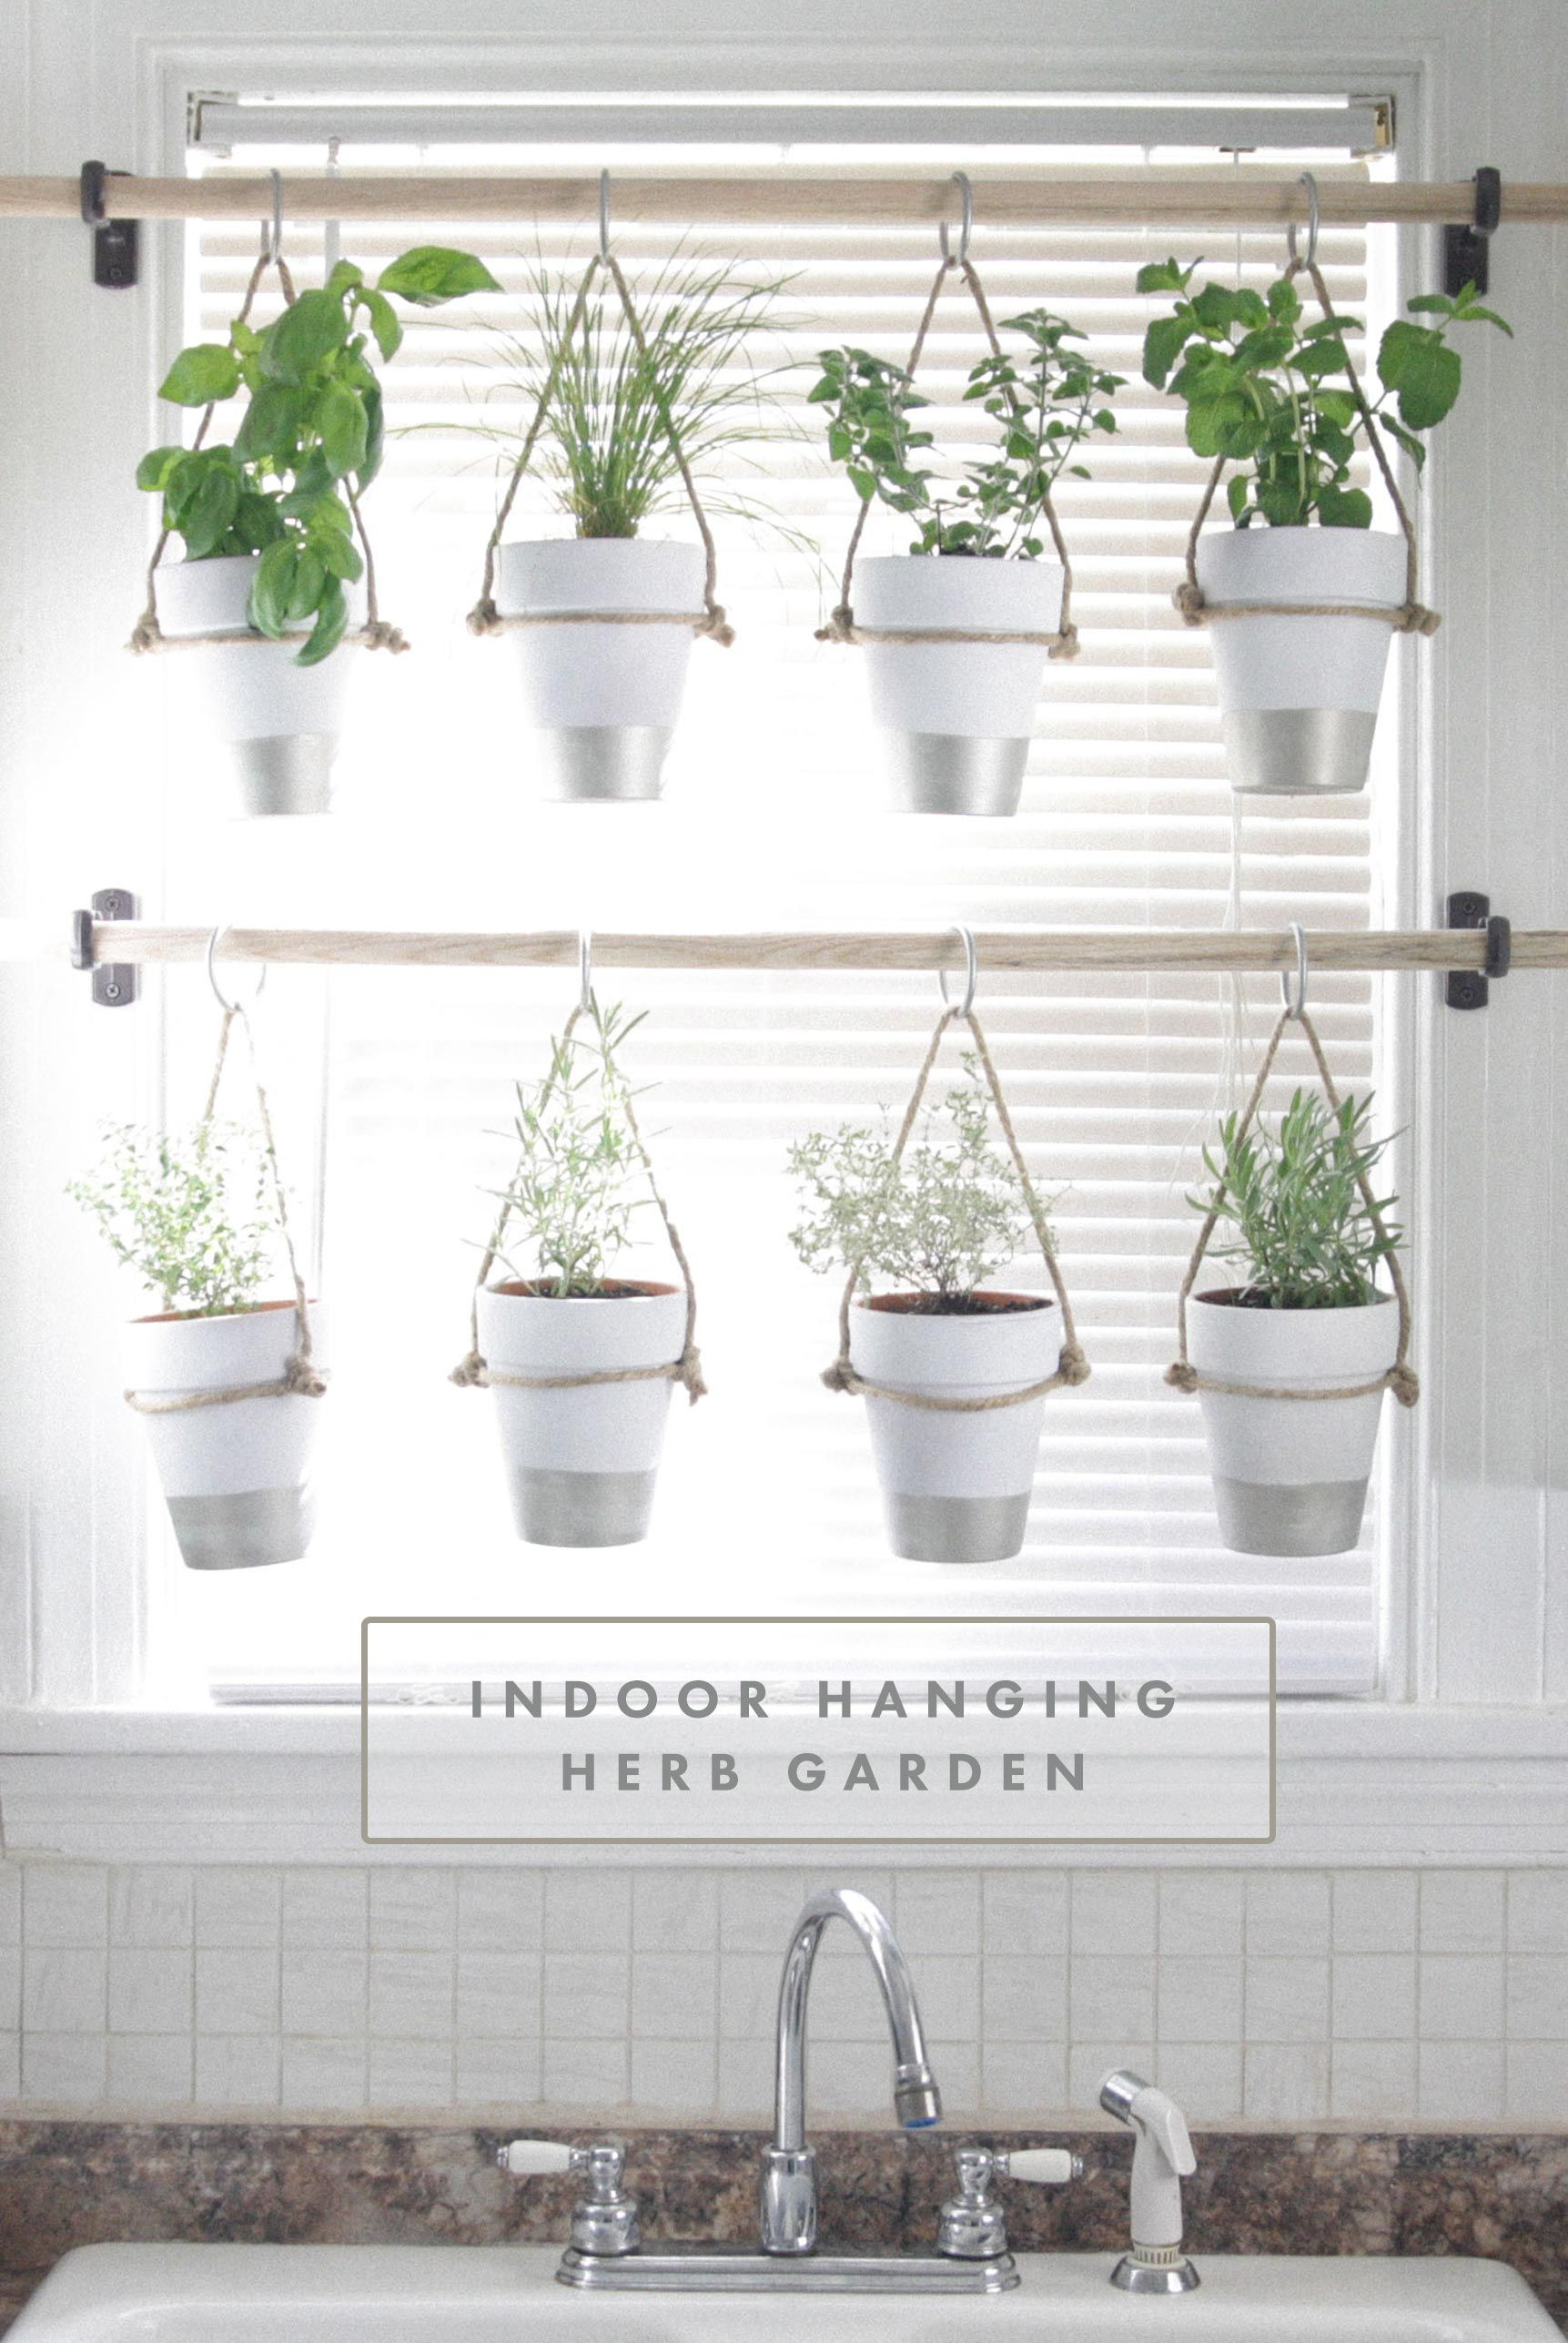 Diy Indoor Hanging Herb Garden Learn How To Make An Easy Budget